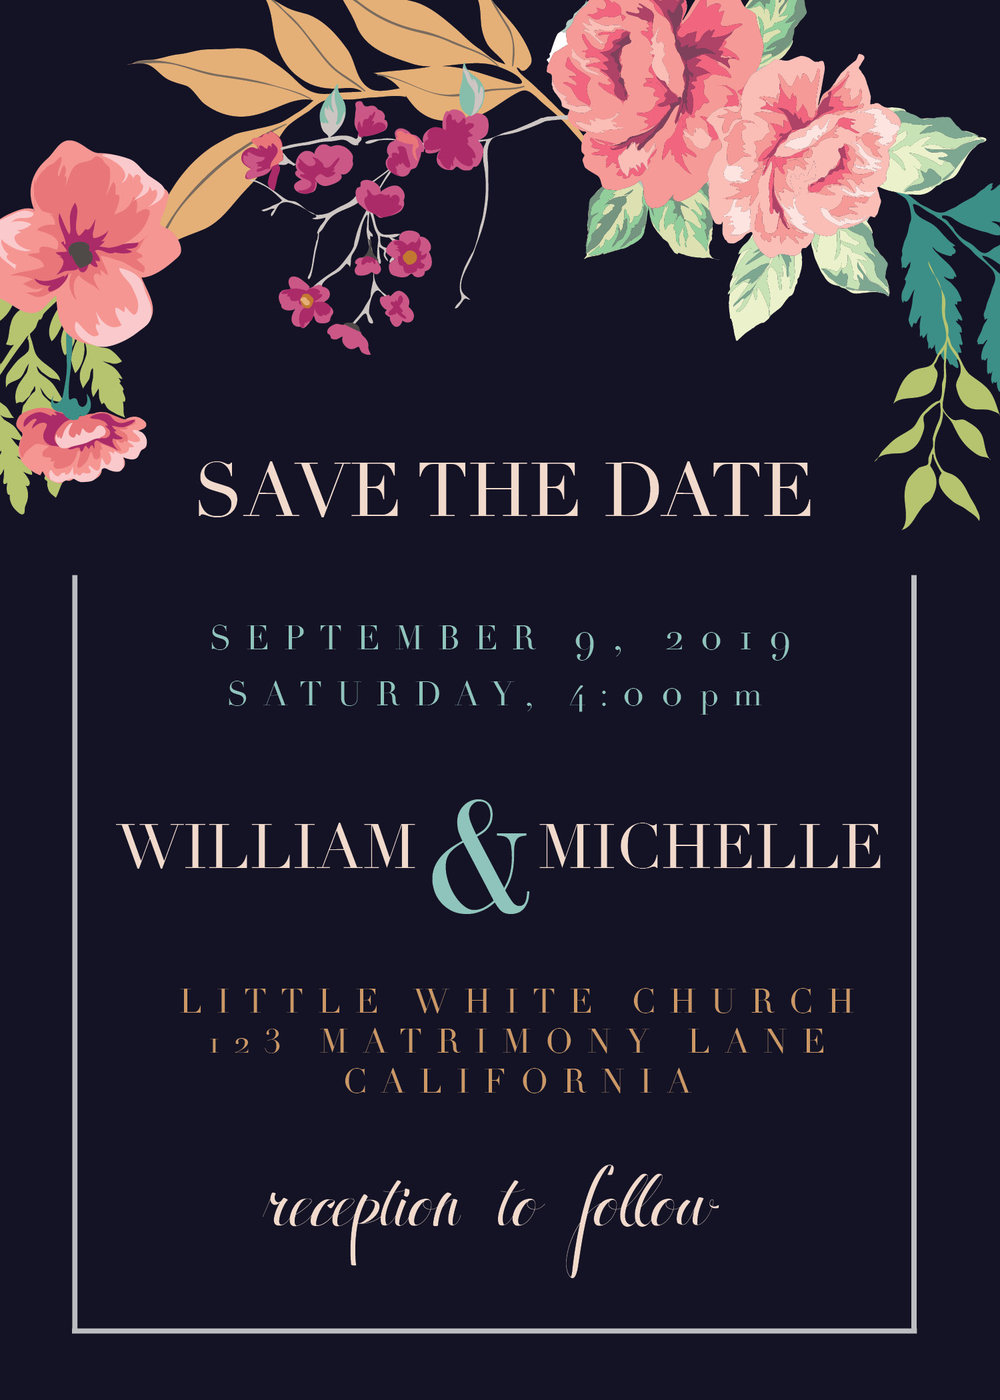 Wedding invite sample 2.jpg